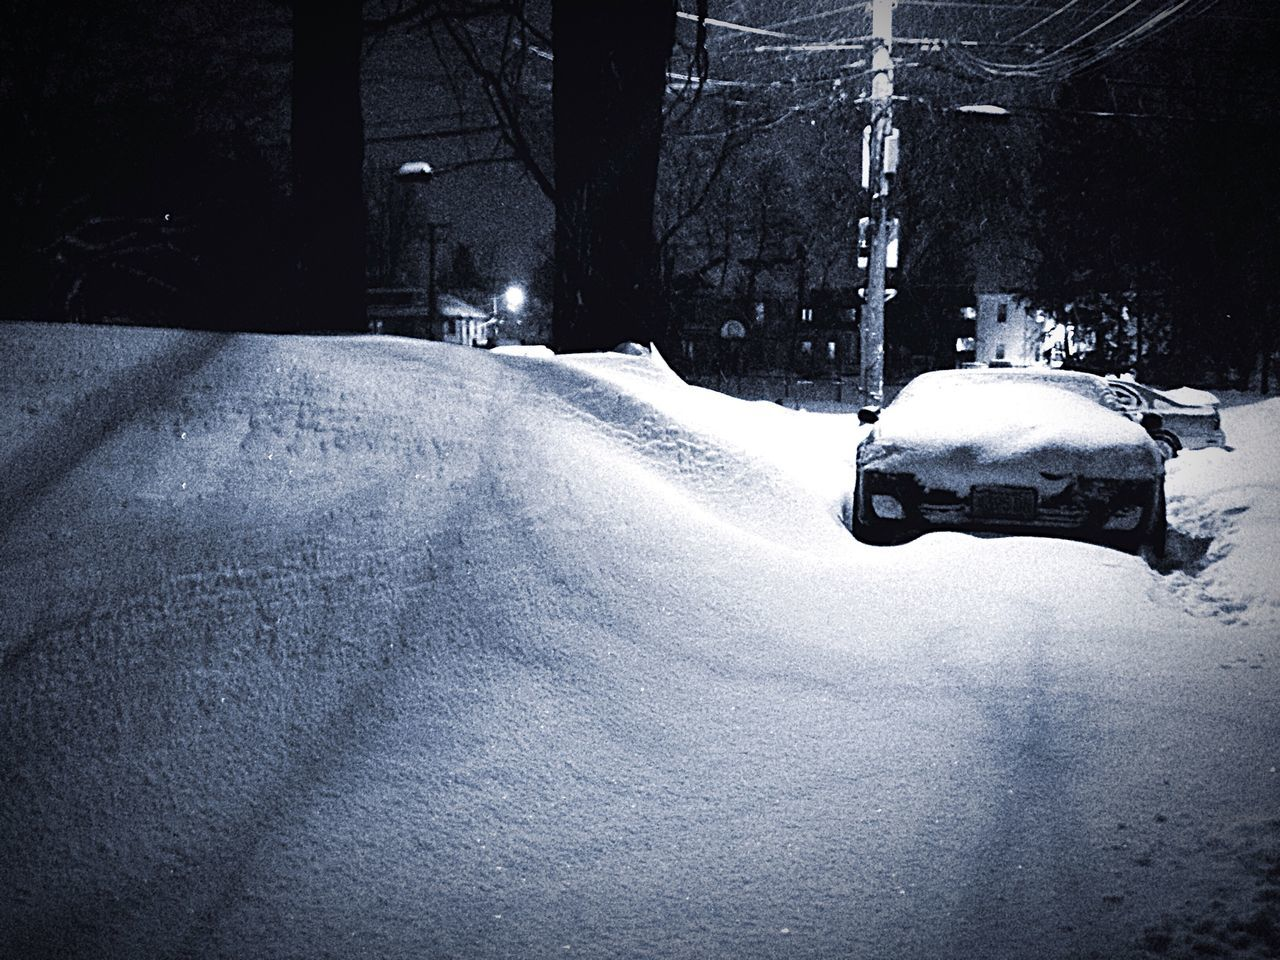 snow, winter, transportation, cold temperature, land vehicle, weather, mode of transport, street, car, road, outdoors, night, nature, no people, architecture